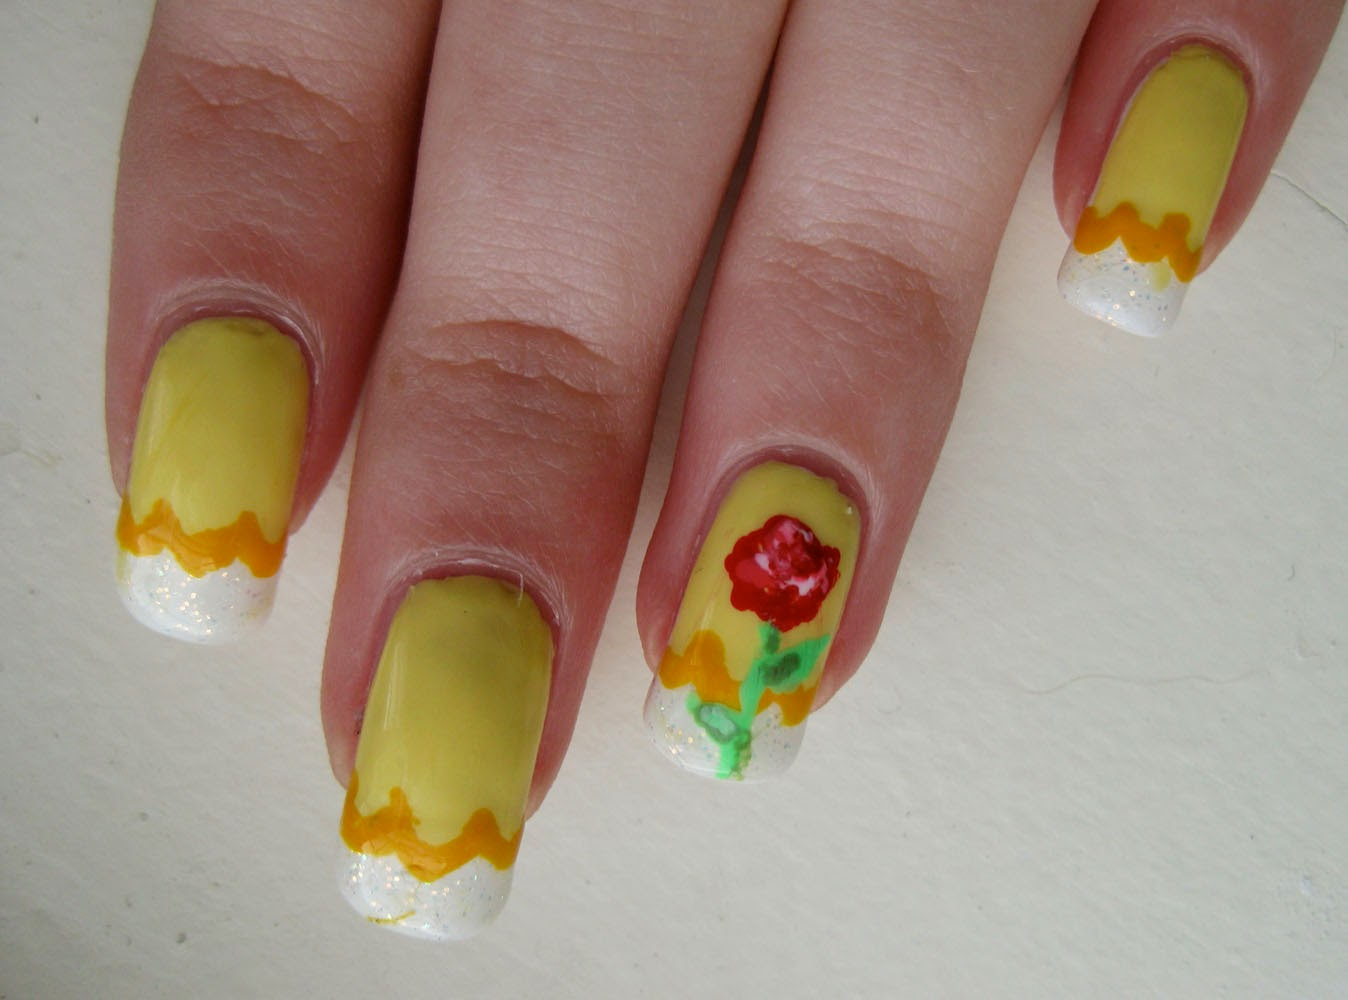 Beauty and the Beast Nailshttp://nails-side.blogspot.com/